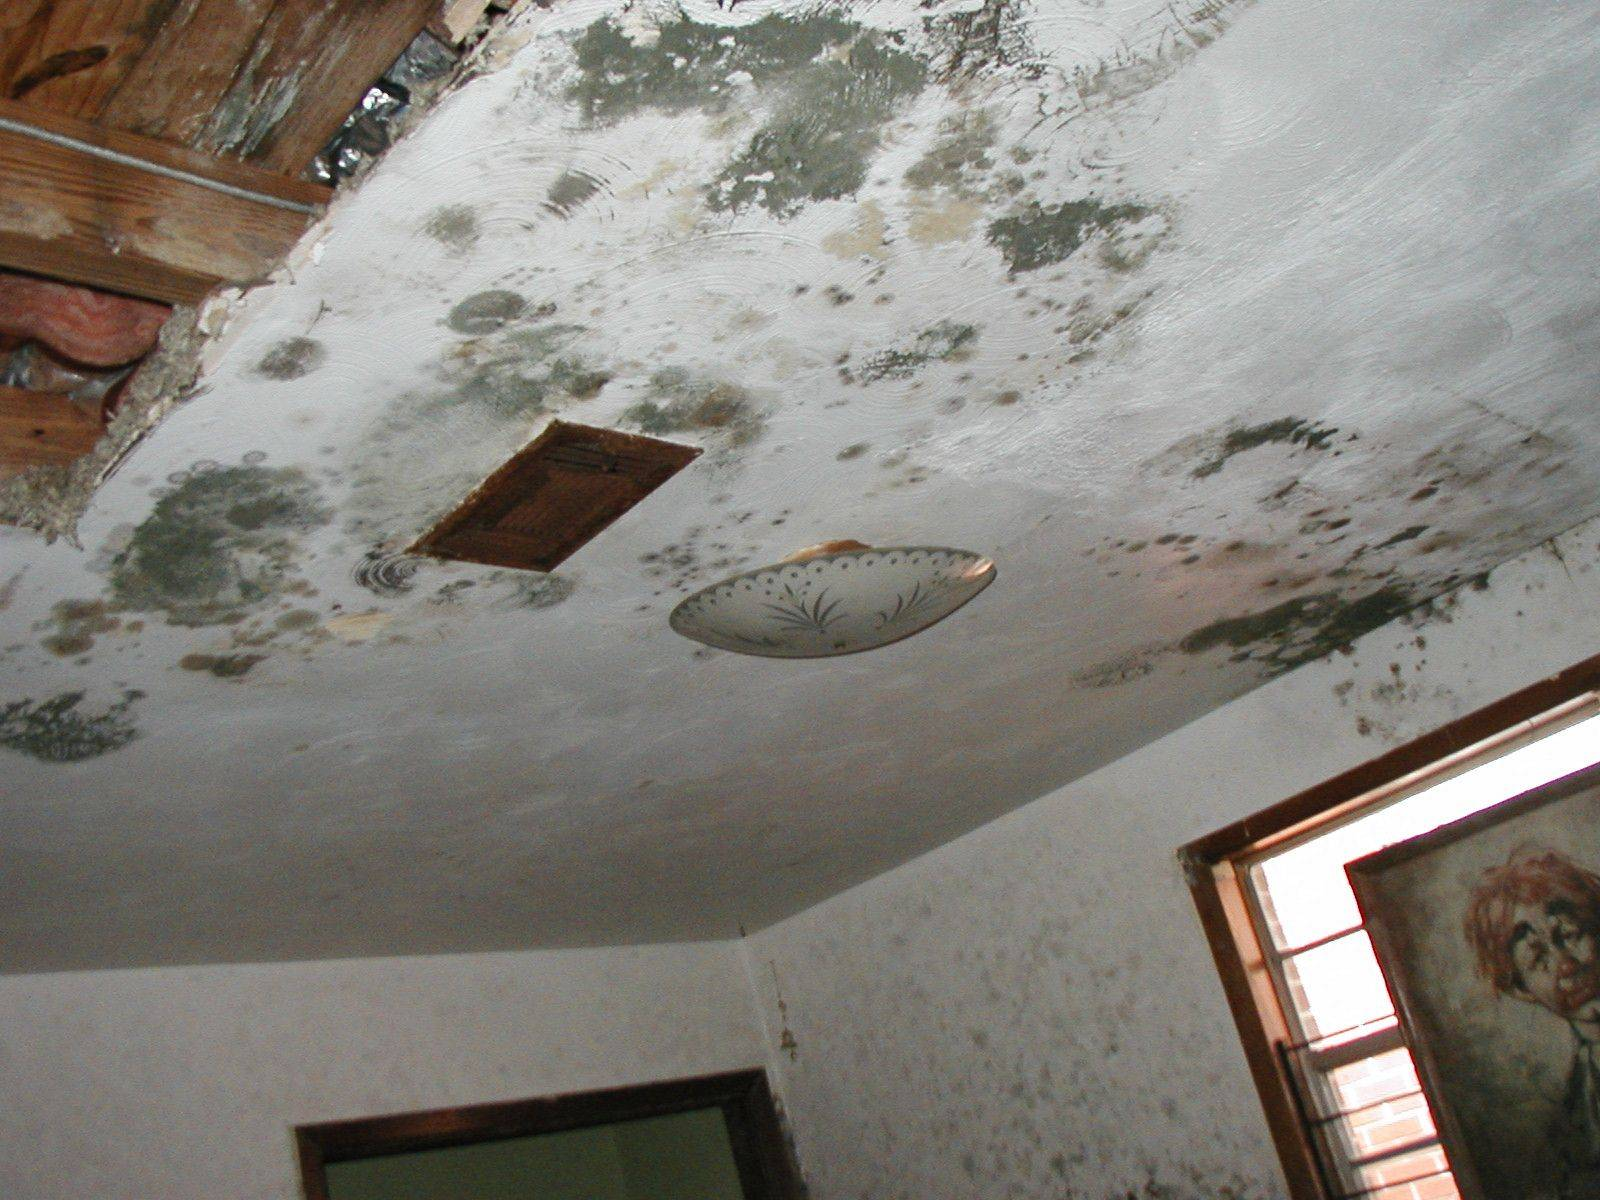 Damaged ceiling with water stains